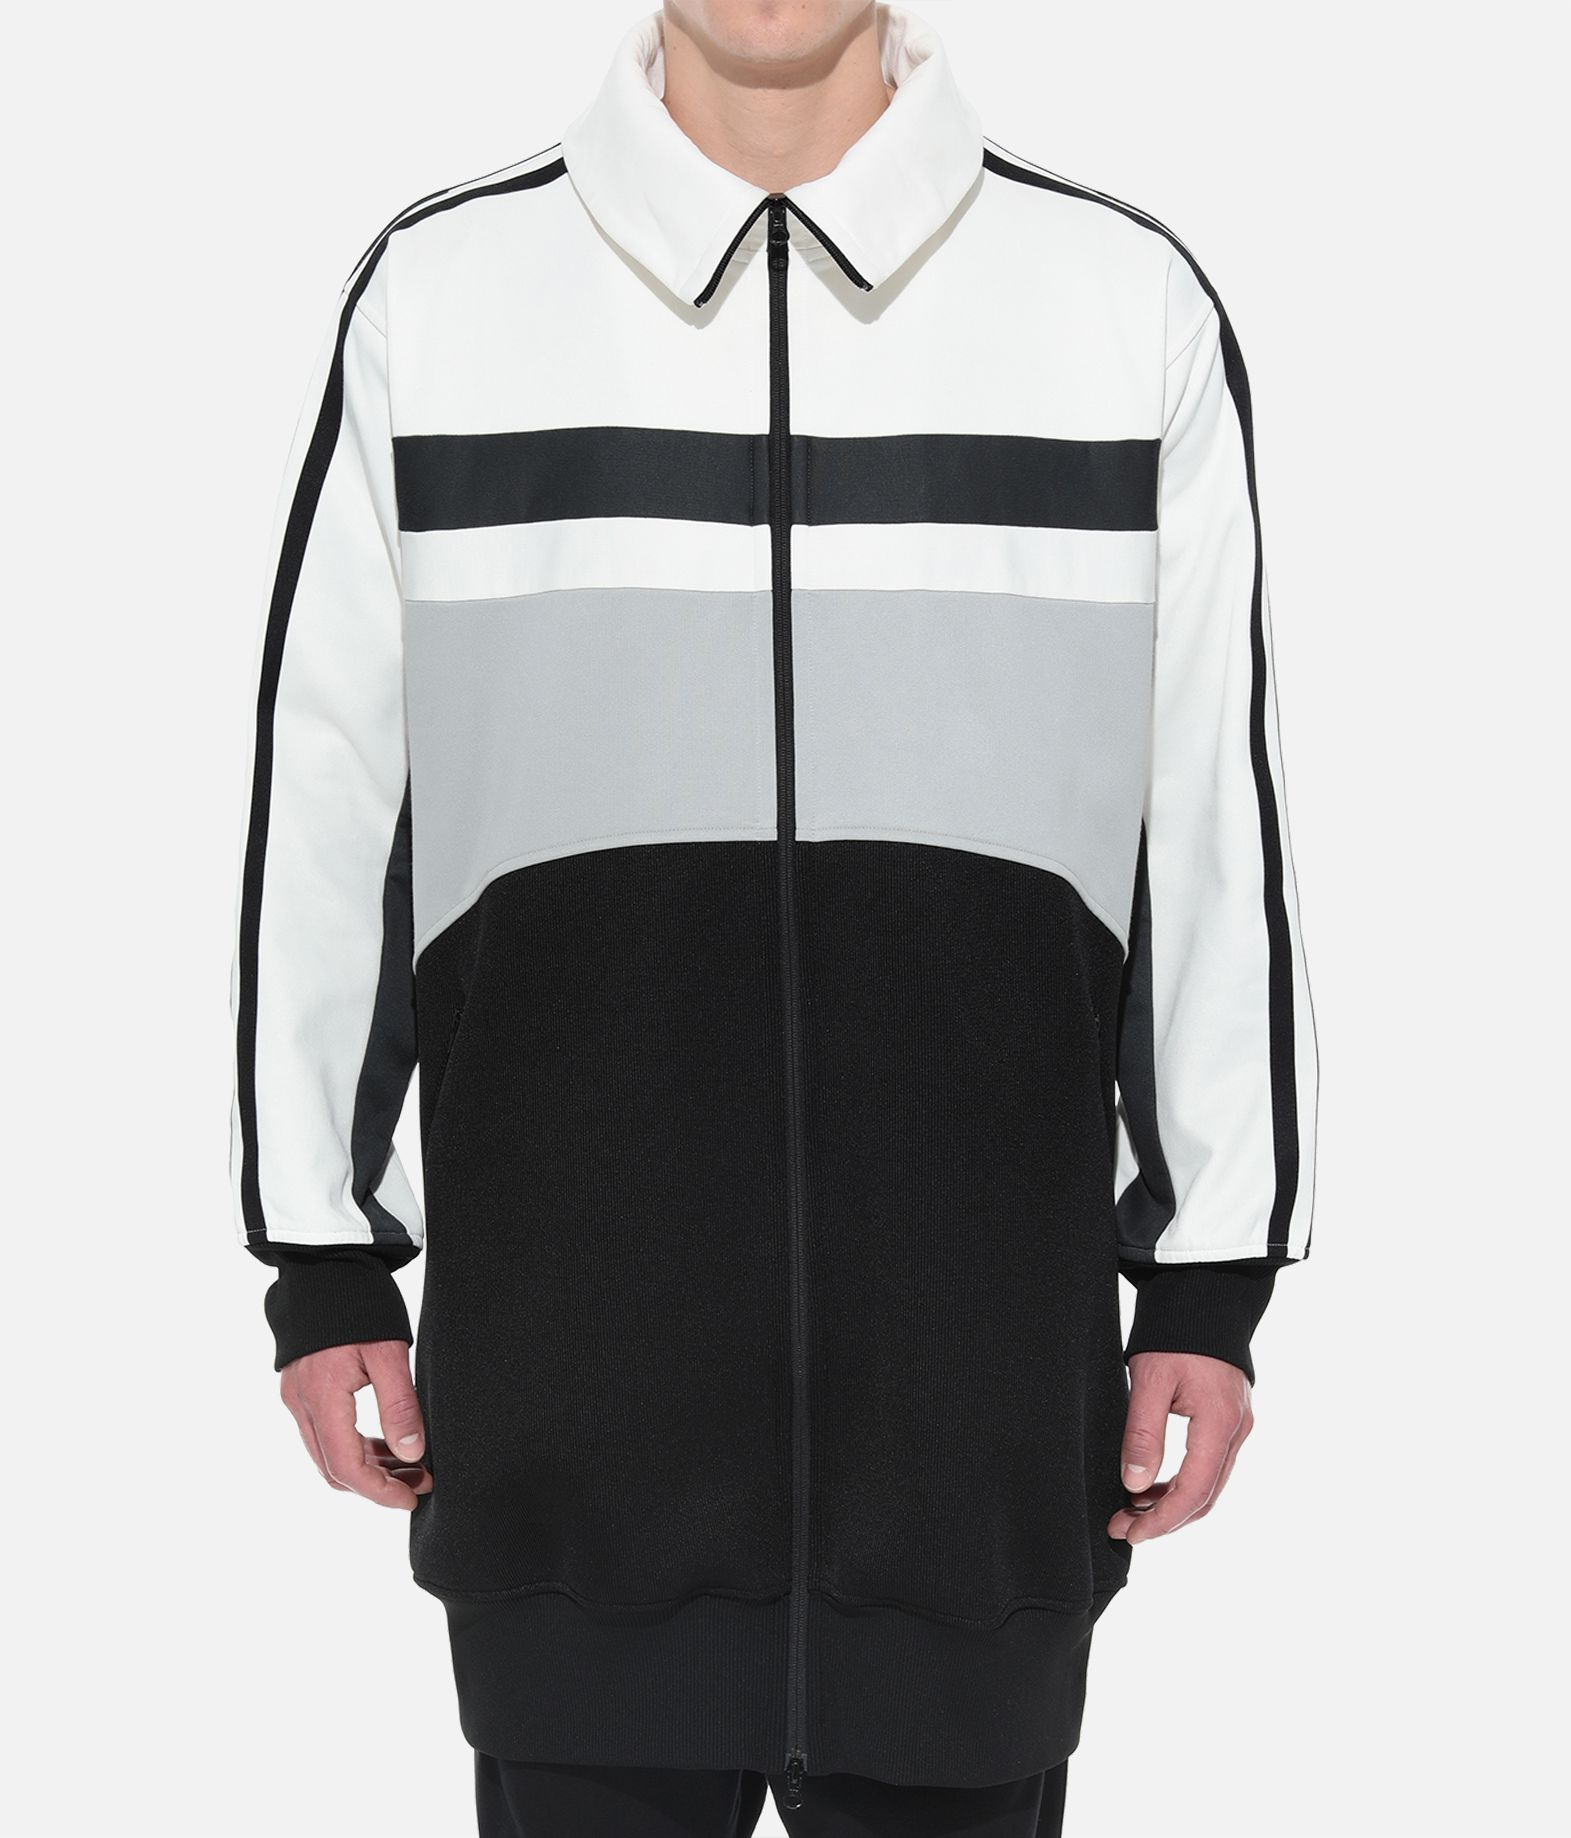 Y-3 Y-3 OVERSIZED GRAPHIC TRACK TOP Track top Herr r